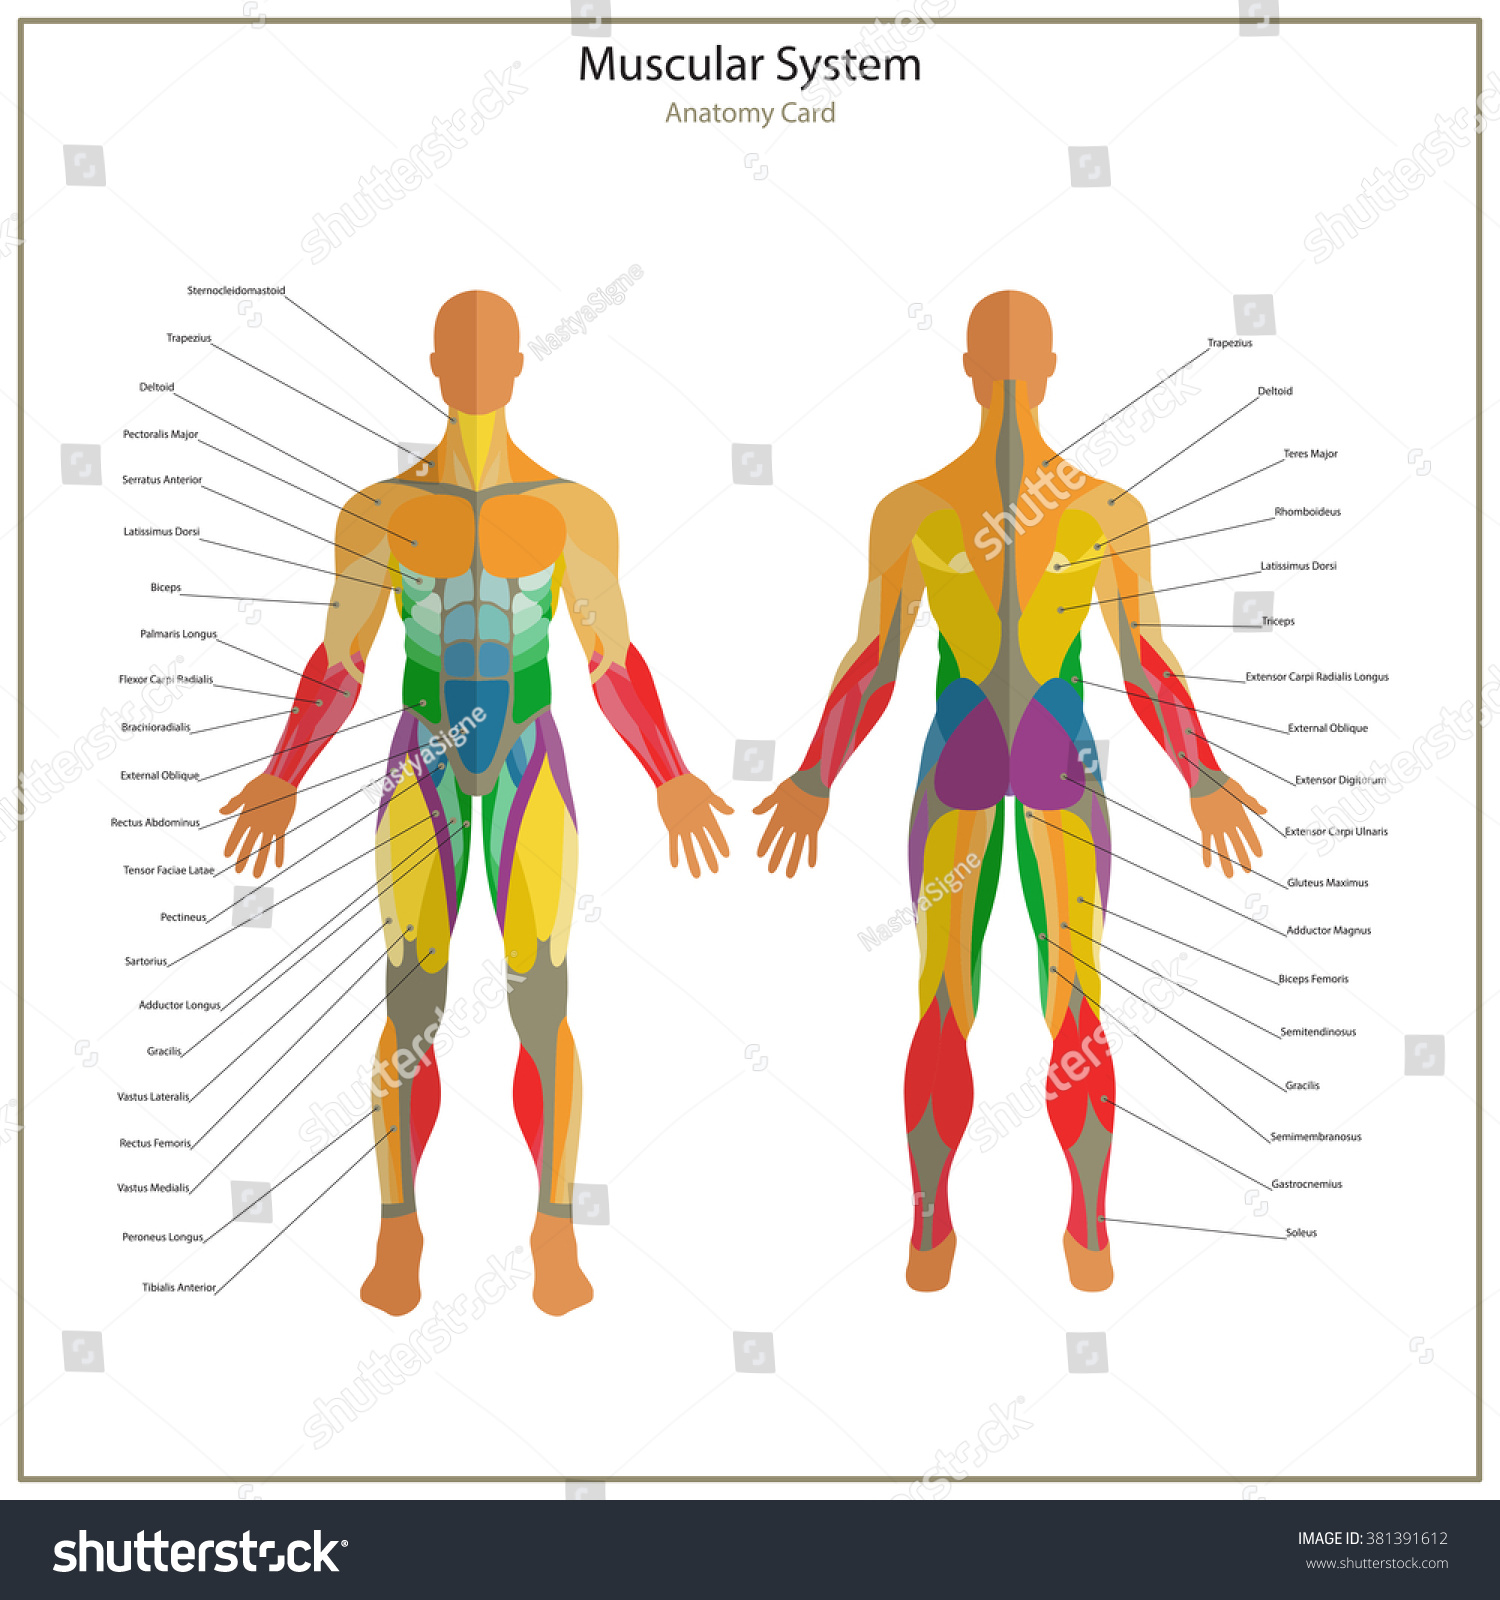 illustration human muscles exercise anatomy guide stock vector, Muscles